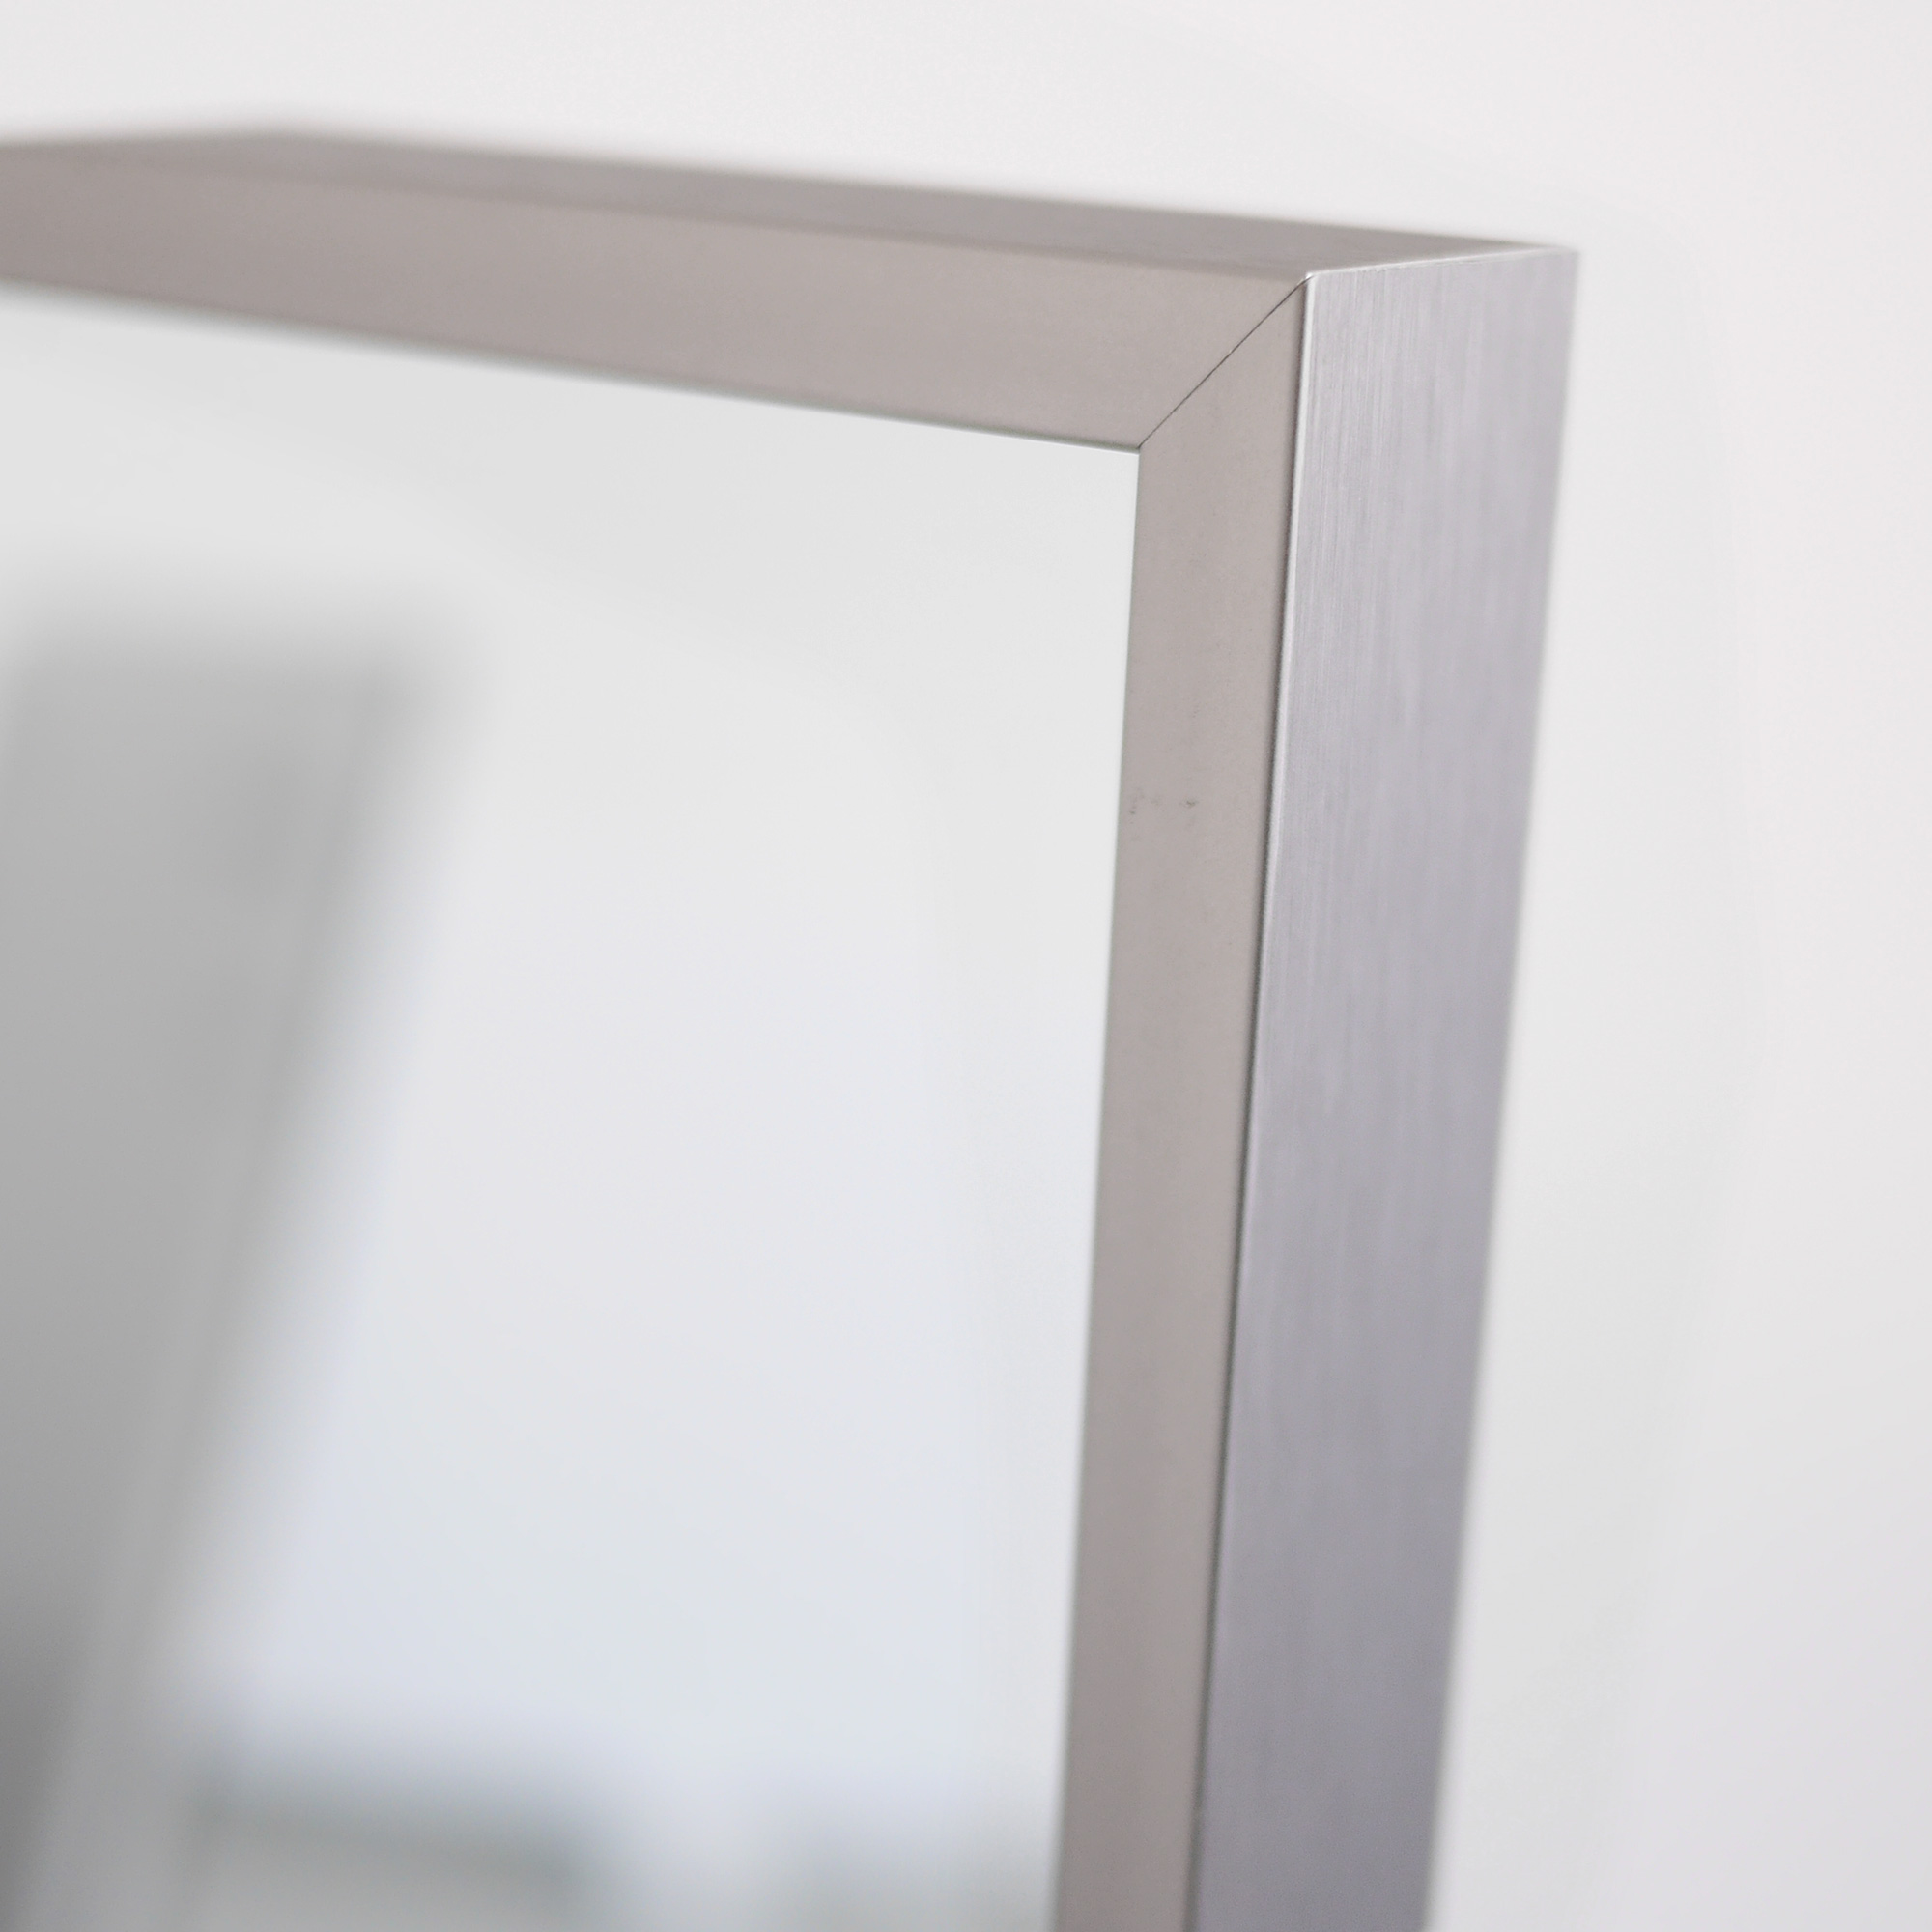 Framed IR Mirror with elegant titanium frame